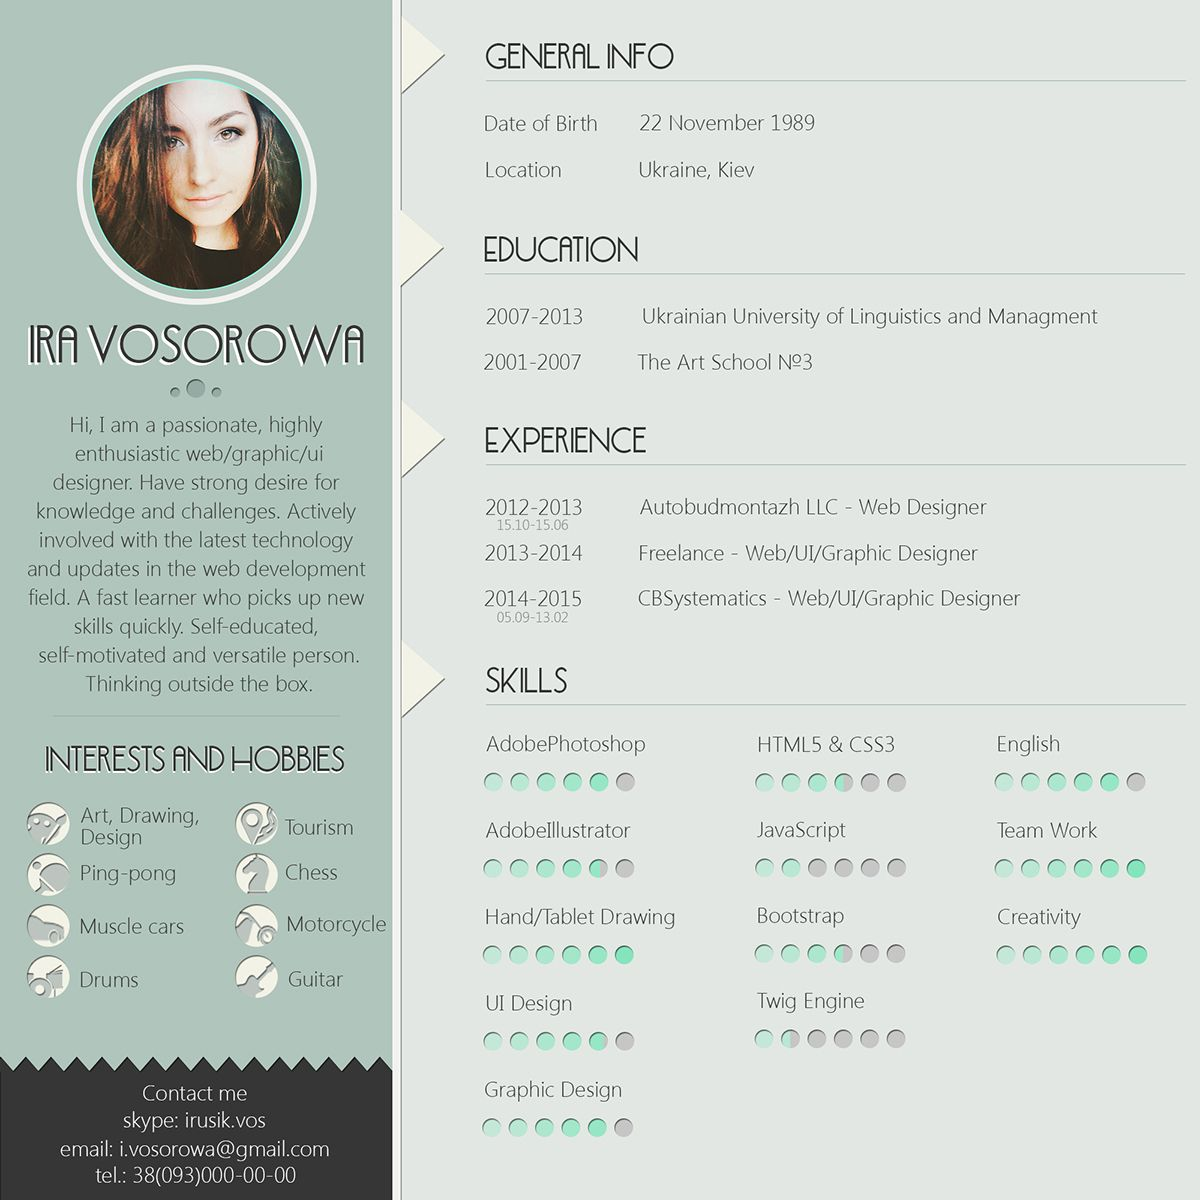 Mint CV Design On The Links Below You Can Get Free Psd Template - Cool resume templates free download